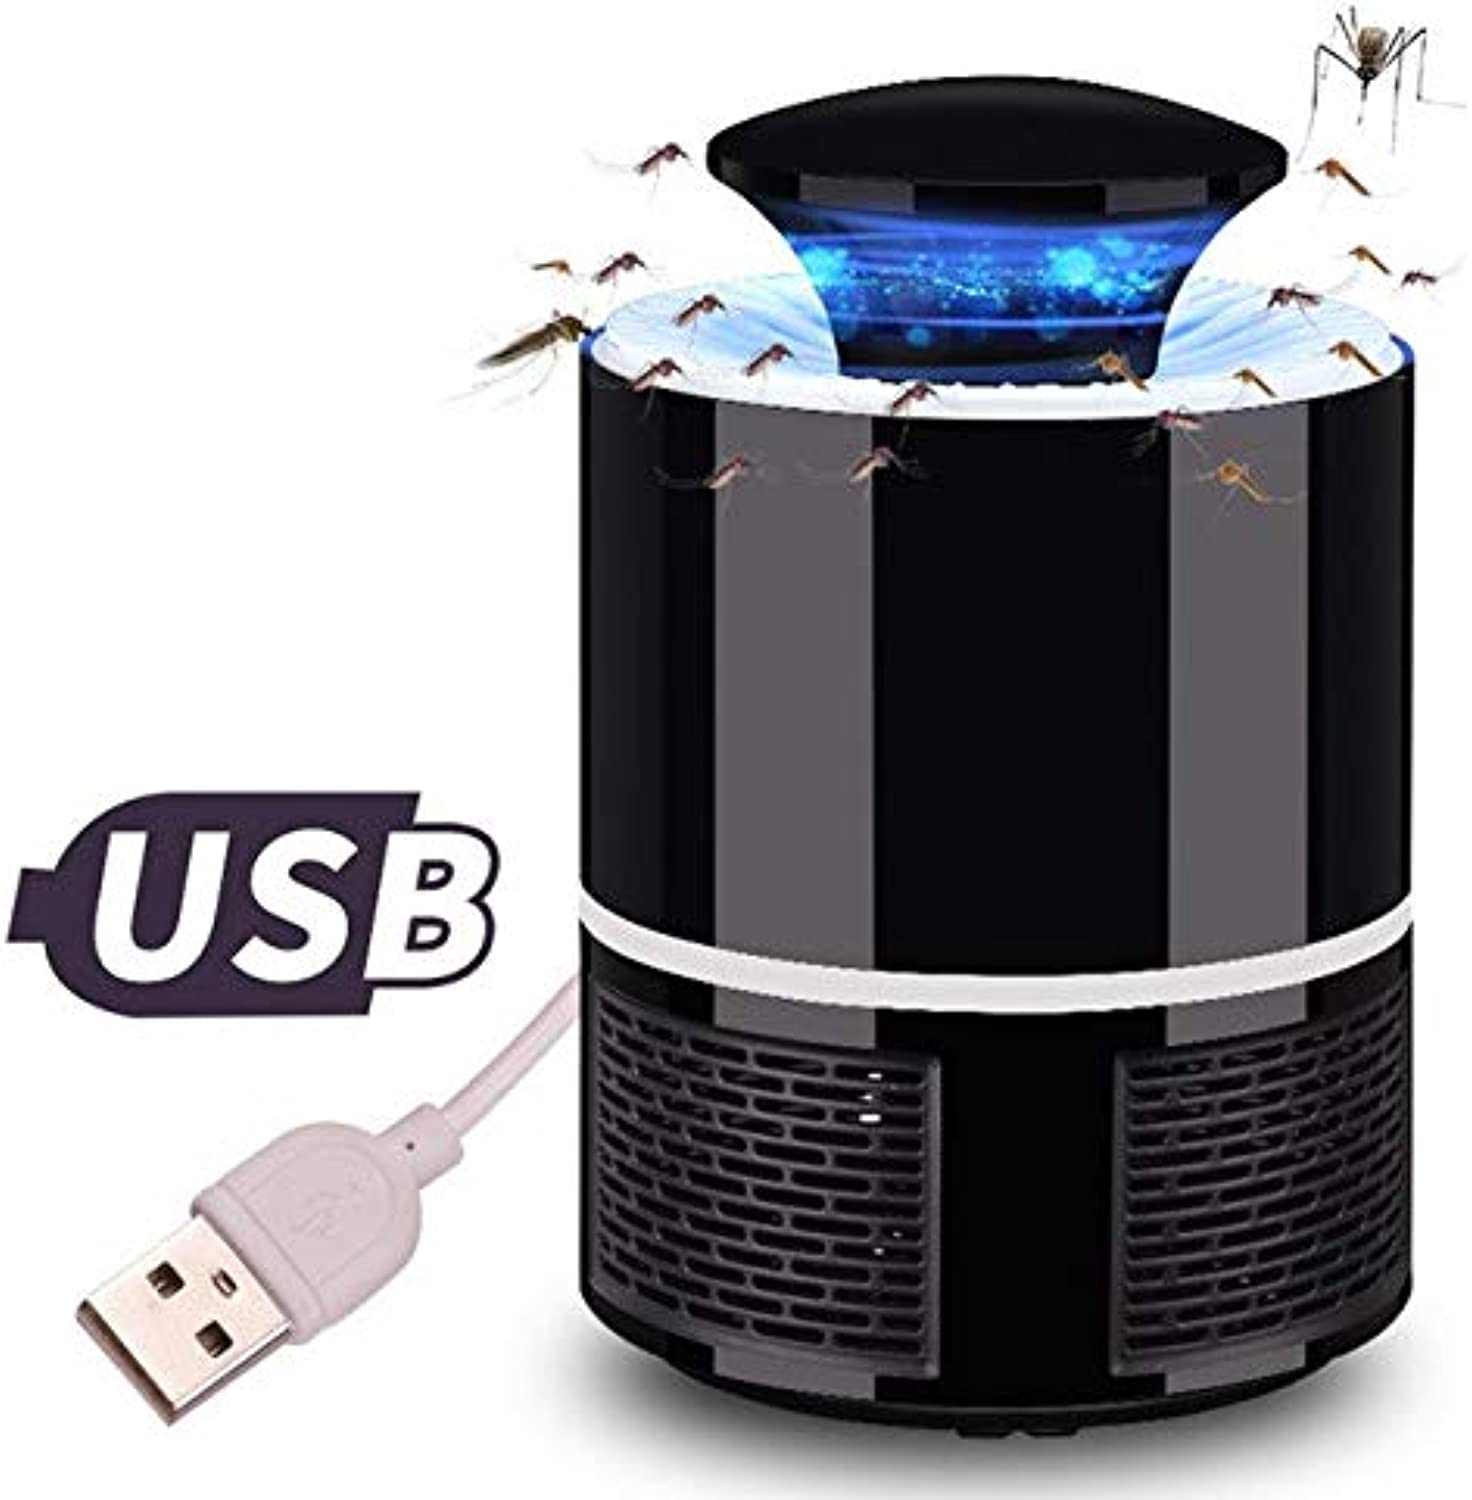 Shoppy Star USB Photocatalyst Mosquito Killer lamp Anti Mosquito Repellent Bug Insect Light Electronic Pest Control UV Light Killing Lamp  Black Mosquito lamp, France